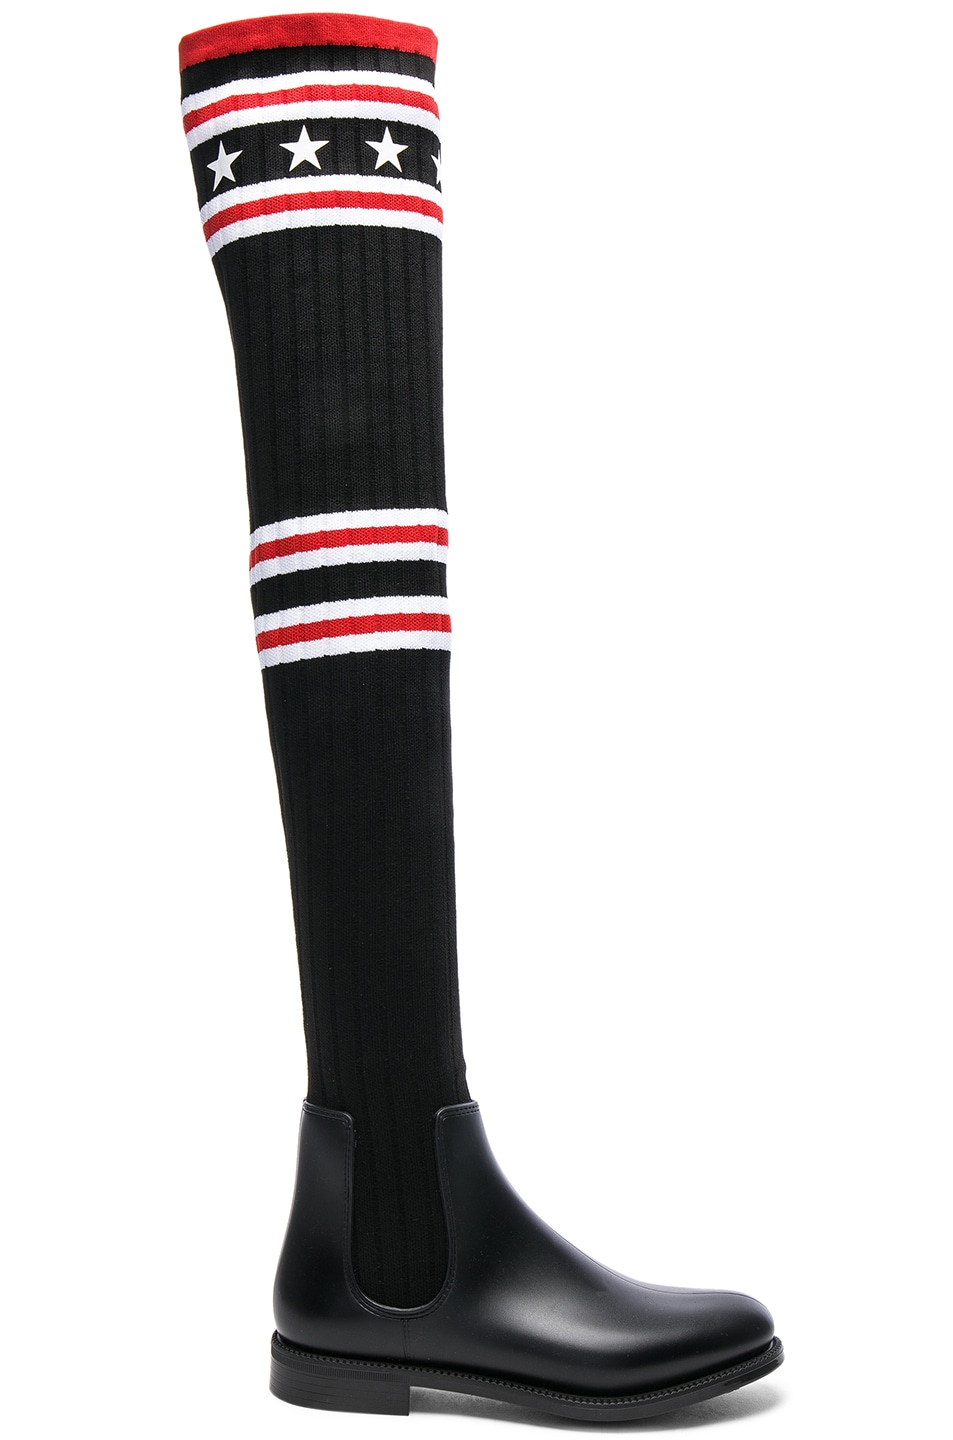 6821293ba37 Image 1 of Givenchy Rib Knit Over The Knee Sock Boots in Black   Red